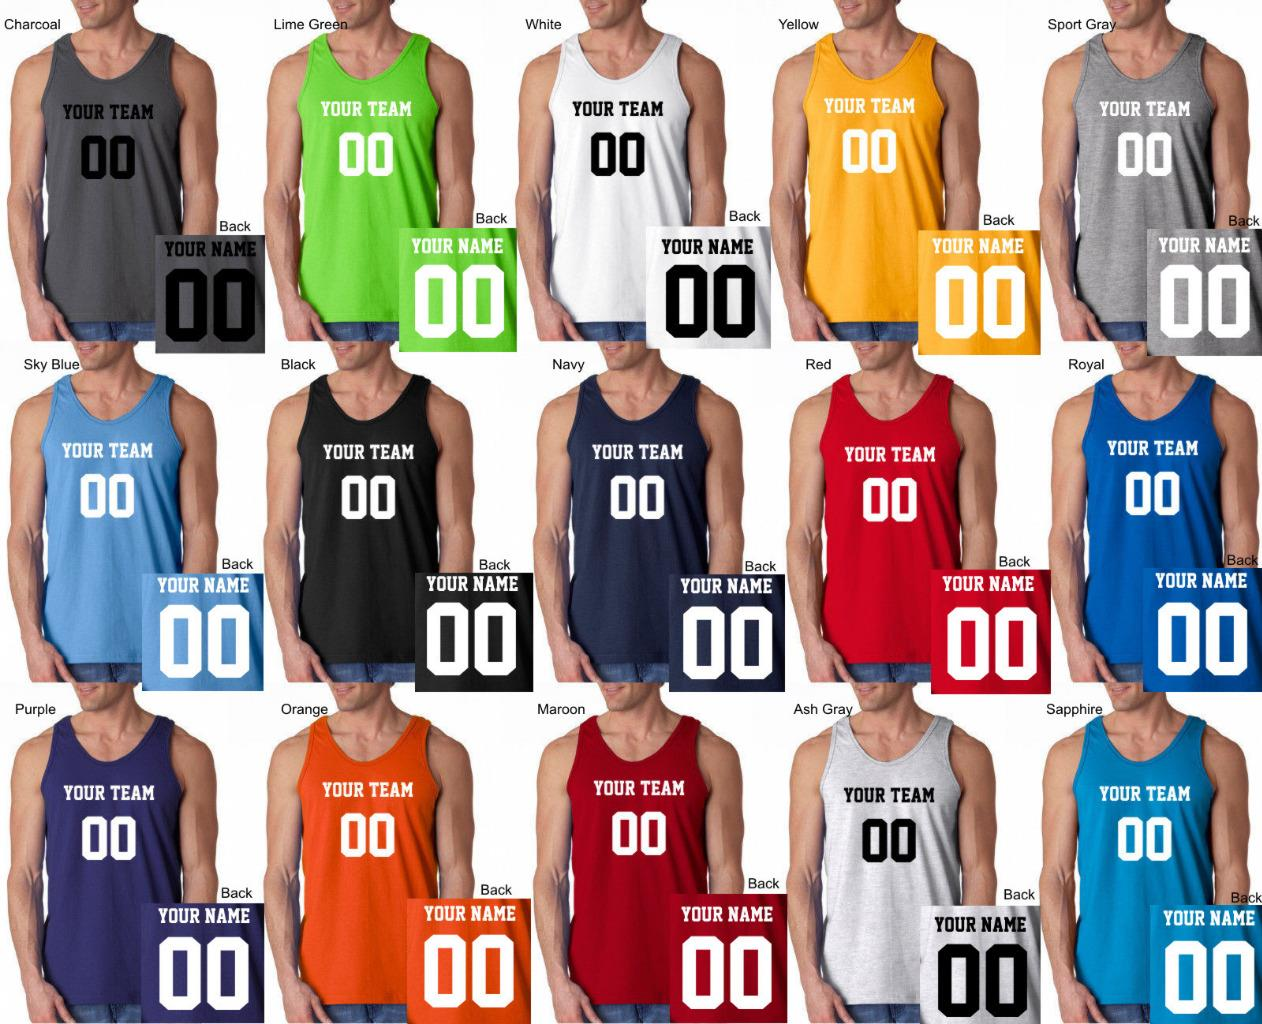 4c827a0c1 Details about CUSTOM Tank Top JERSEY Personalized ANY COLOR Name Number Team  Basketball S-3XL